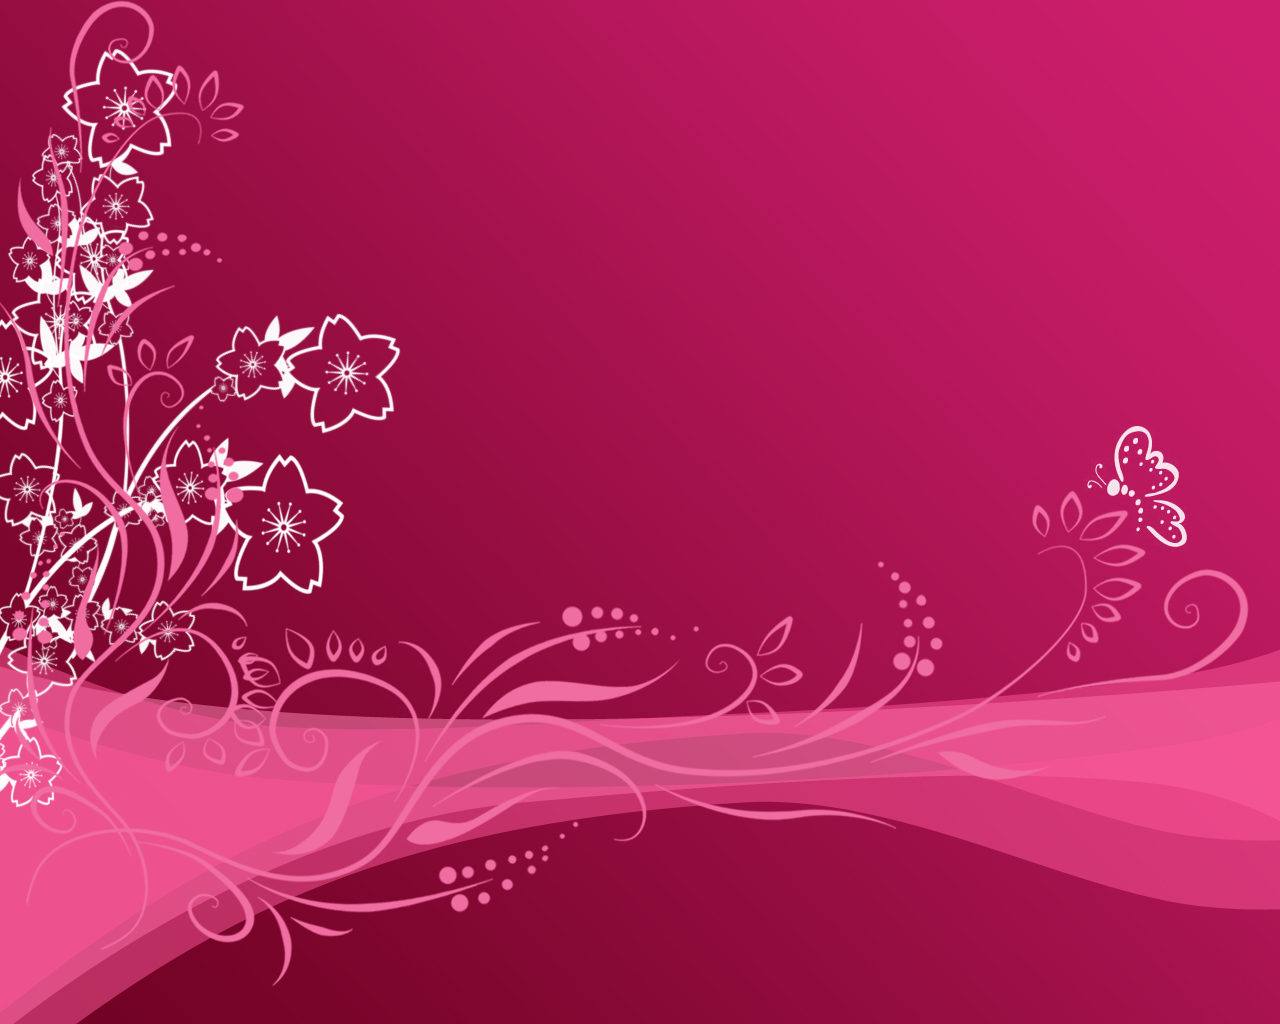 Wallpaper Abstract Pink Hd Desktop Background Wallpaper Gallery 1280x1024